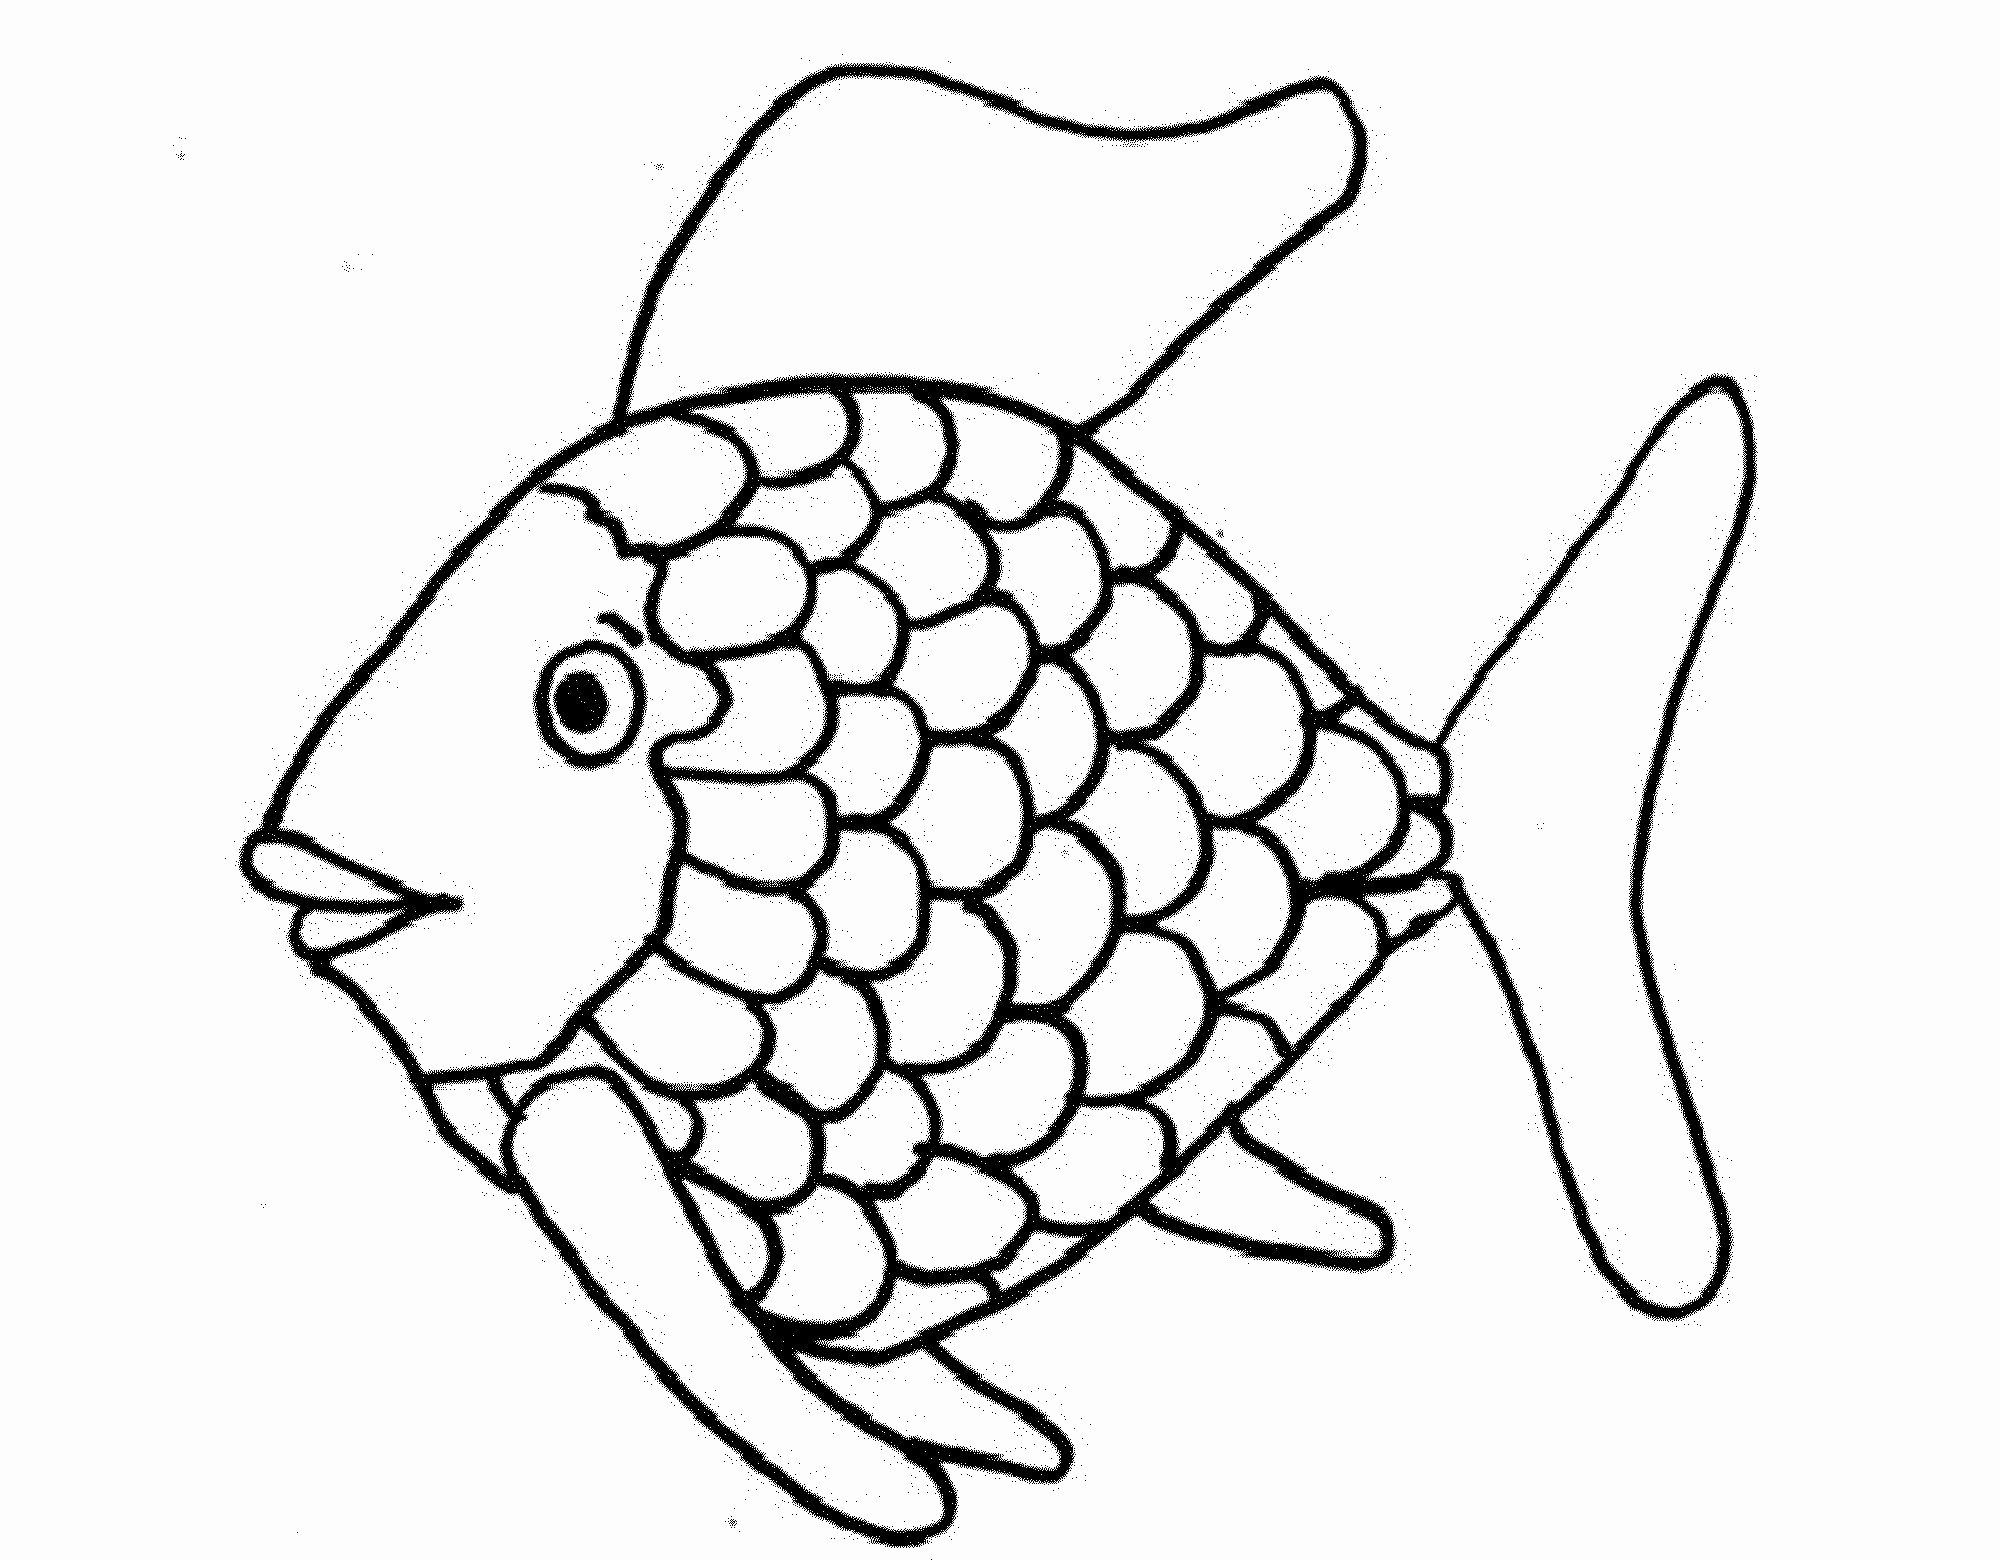 Coloring Cartoon Characters Pdf Luxury 30 Fish Coloring Pages Pdf Collection Colorin Fish Coloring Page Coloring Pages Inspirational Rainbow Fish Coloring Page